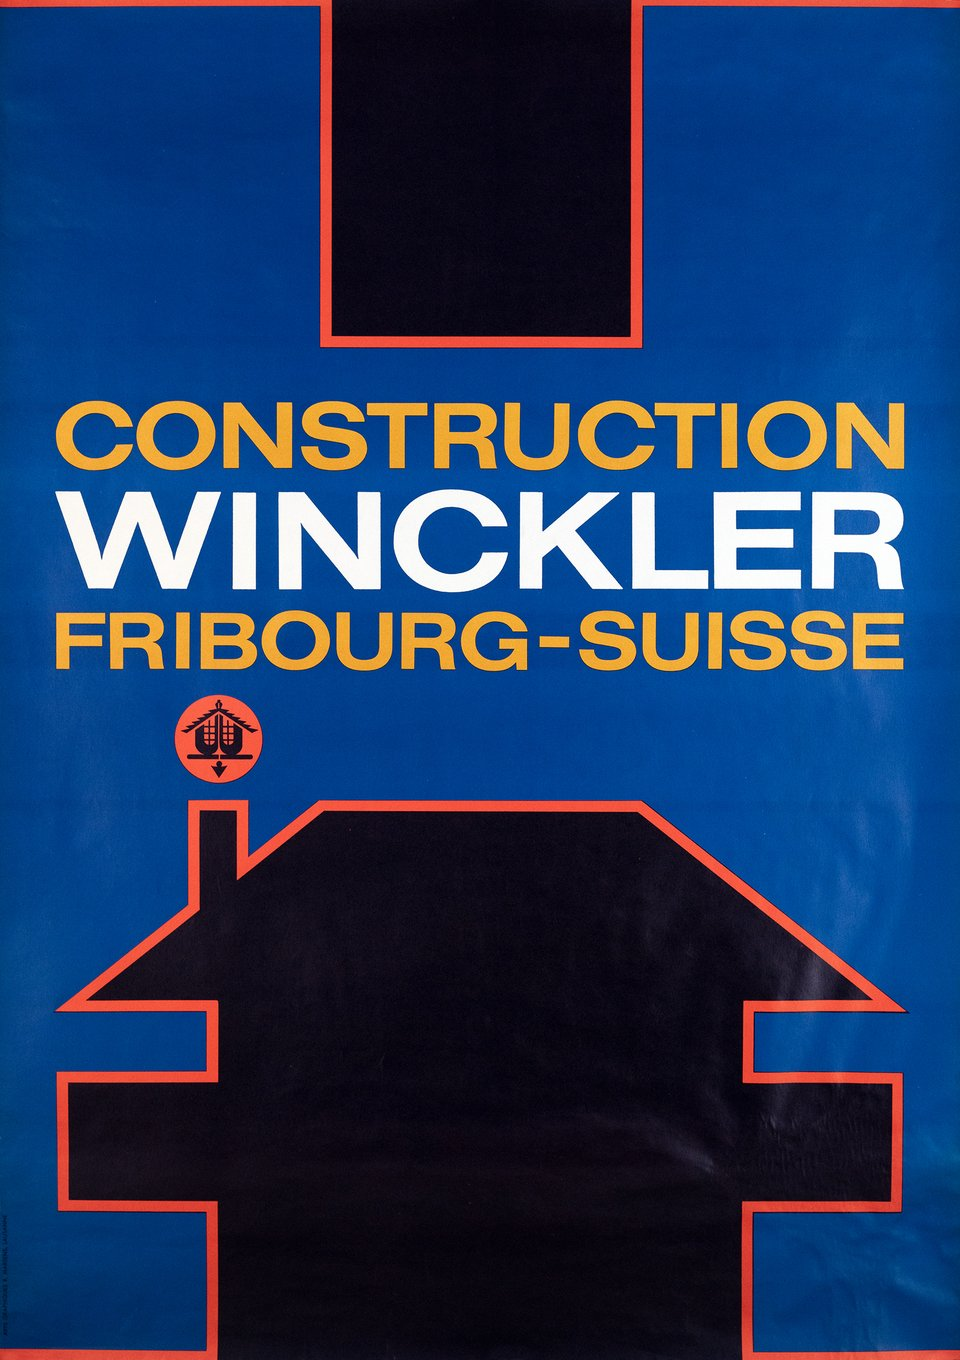 Construction Winckler, Fribourg – Vintage poster – ANONYME – 1960